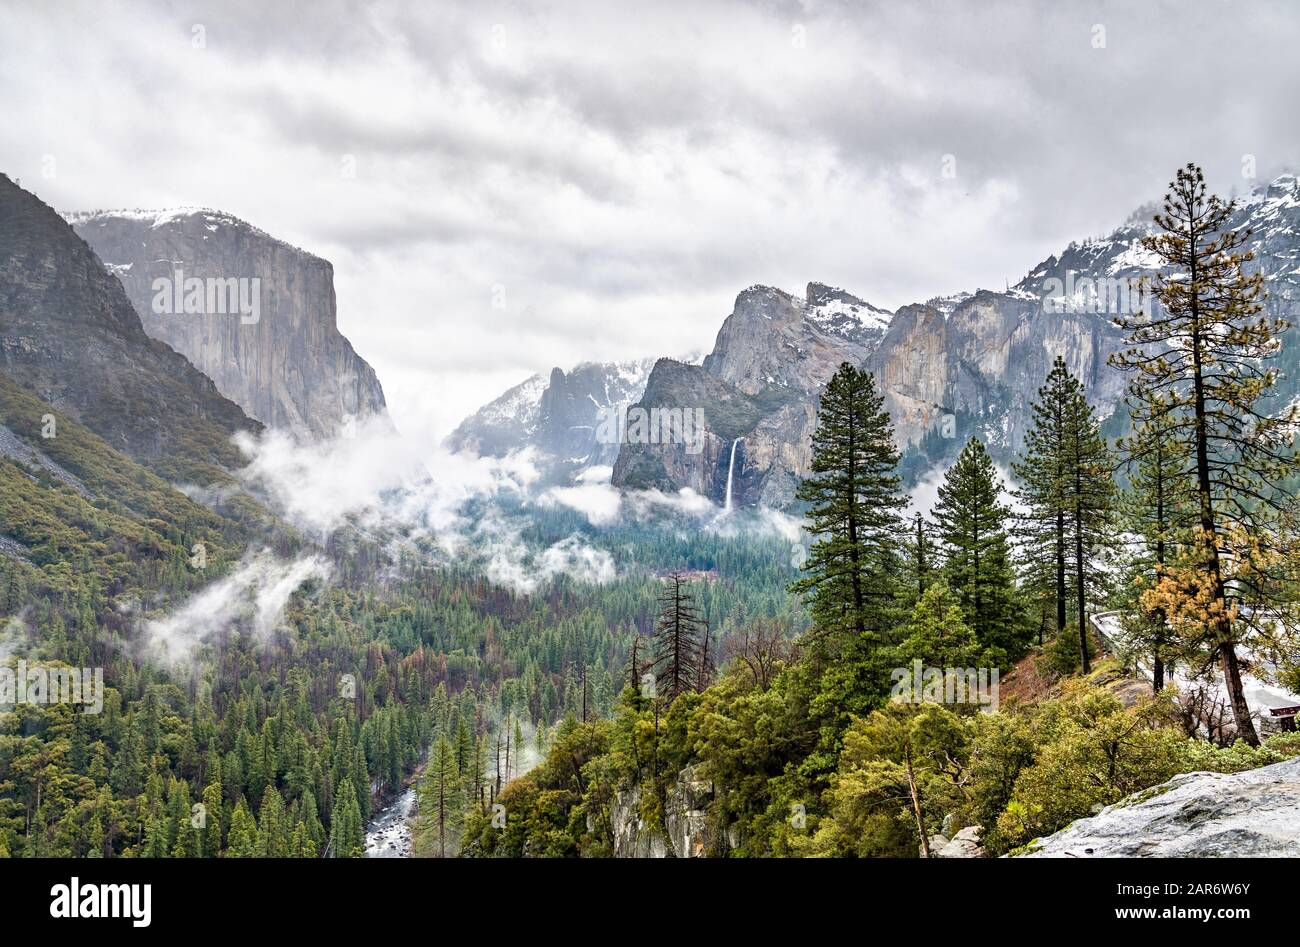 Iconic view of Yosemite Valley in California Stock Photo